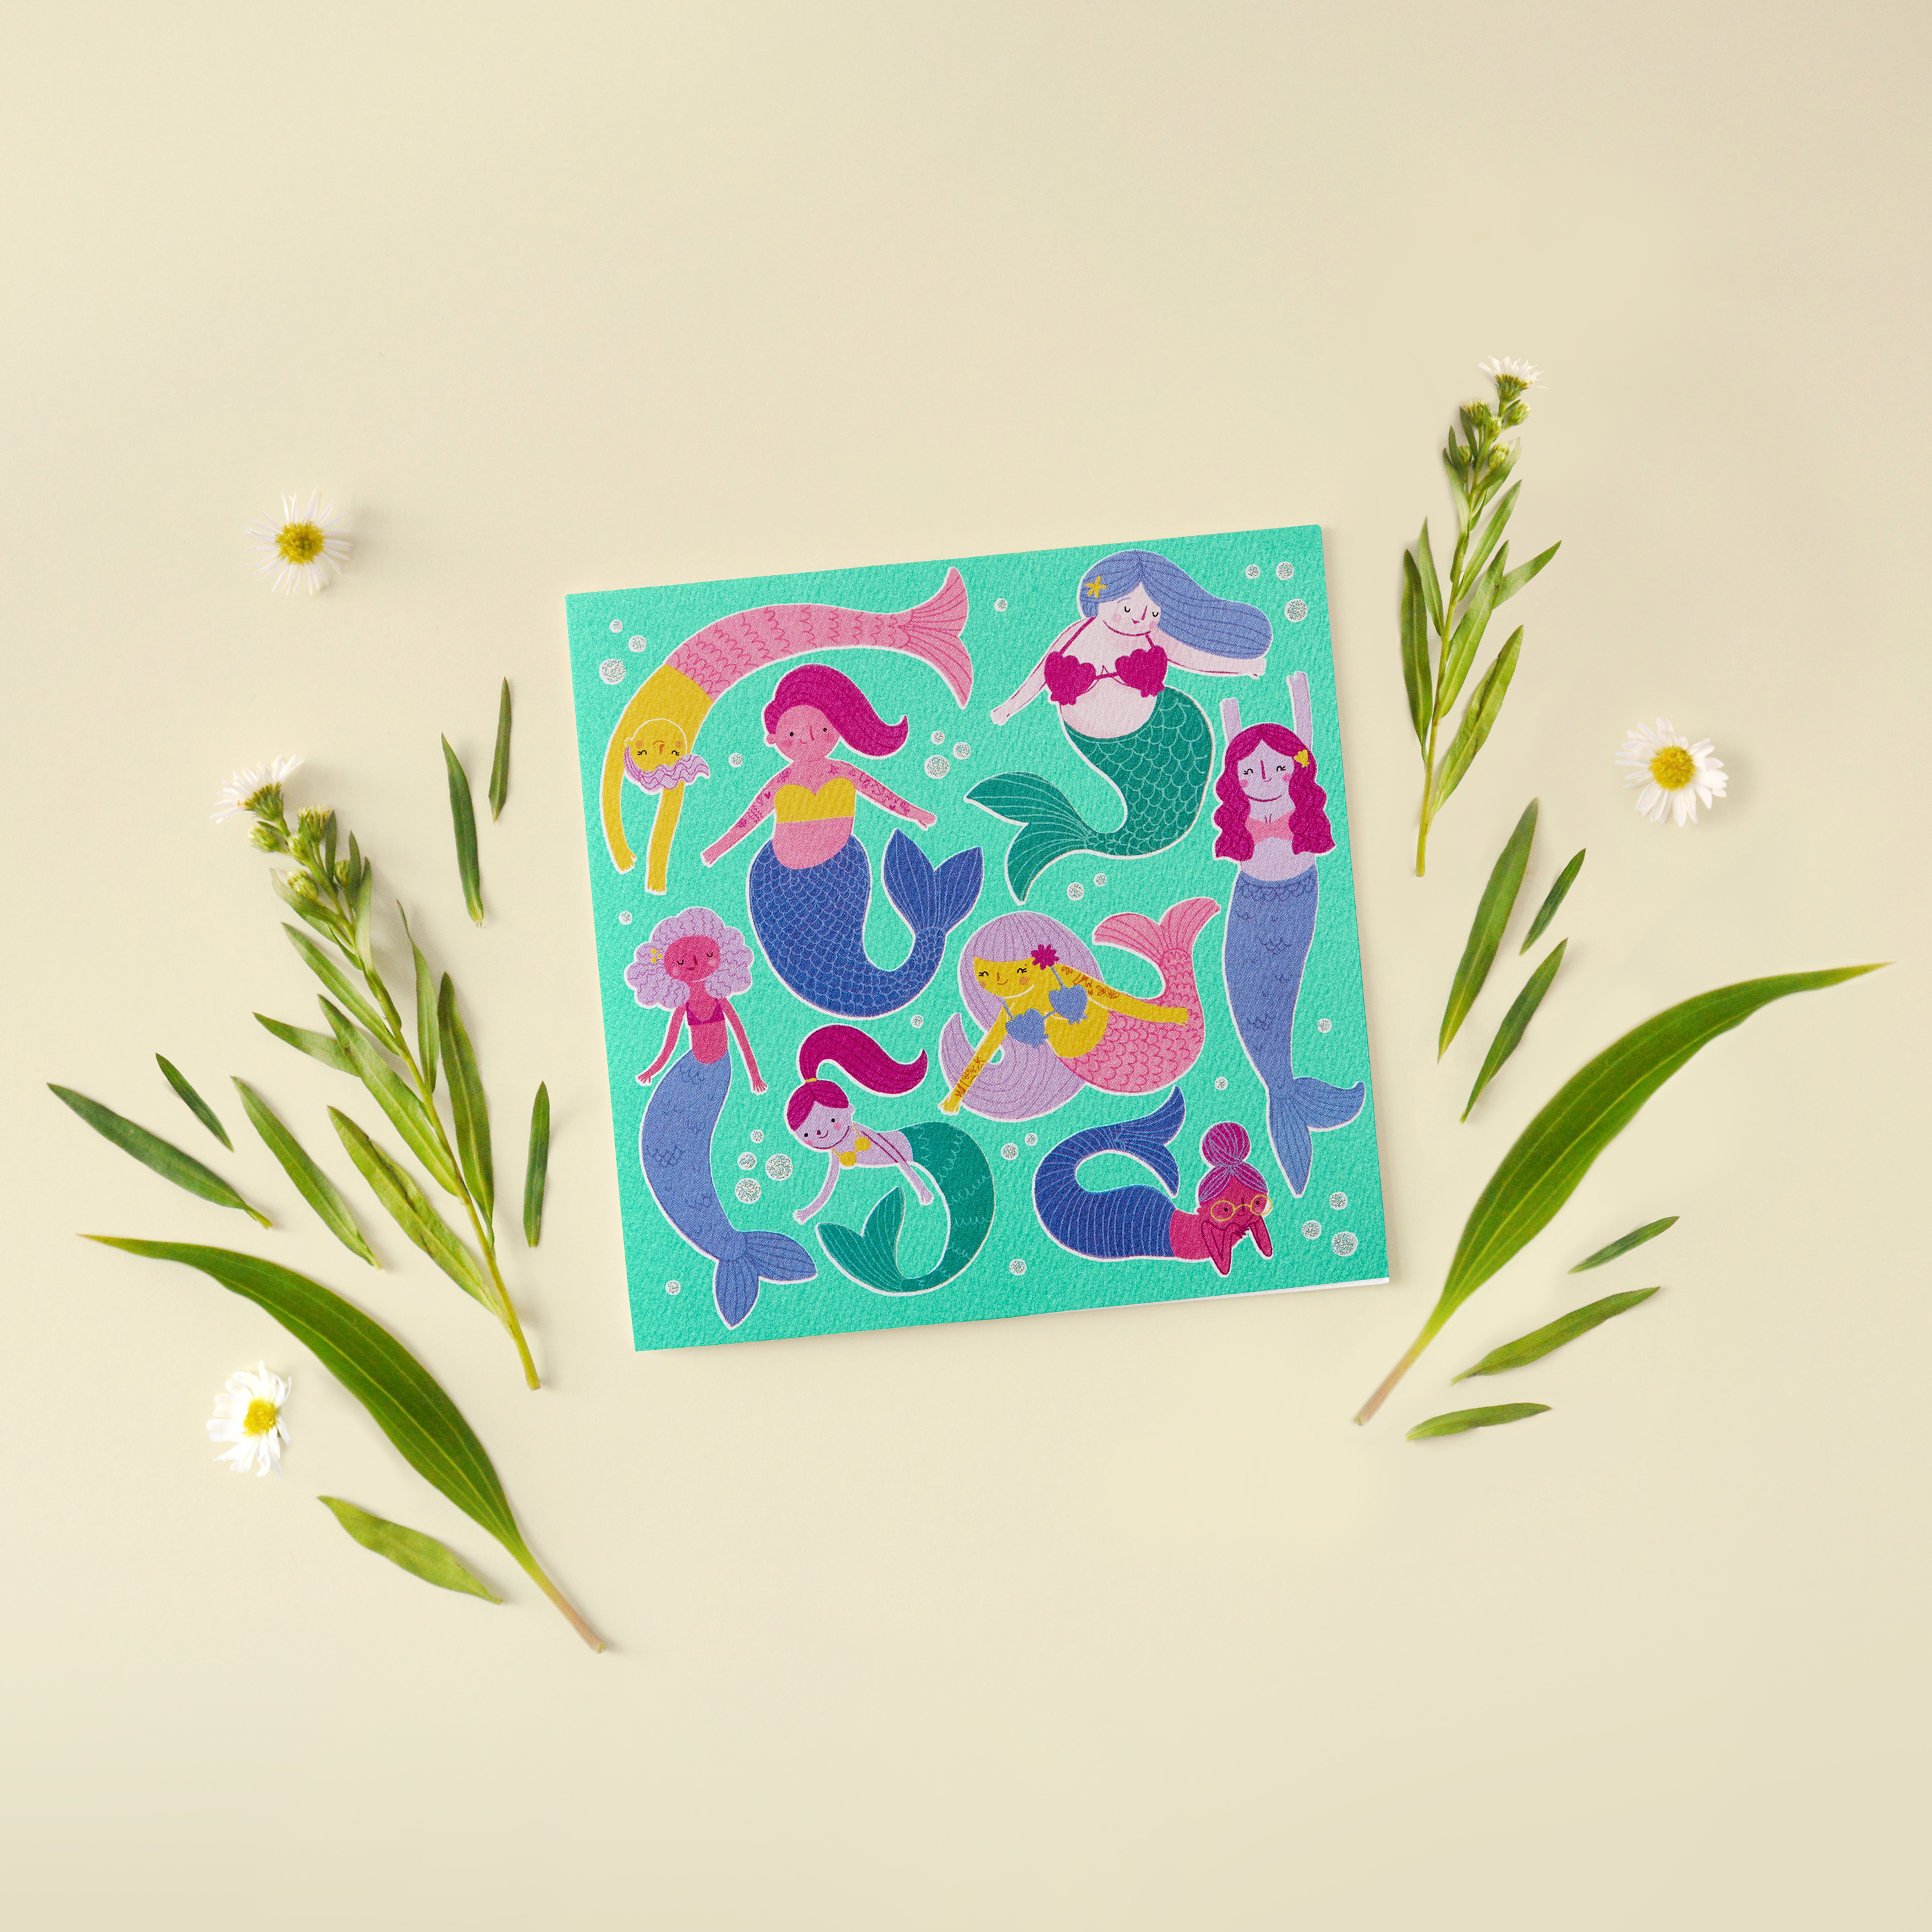 Mermaids Blank Greeting Card - Friendship, Thinking of You image